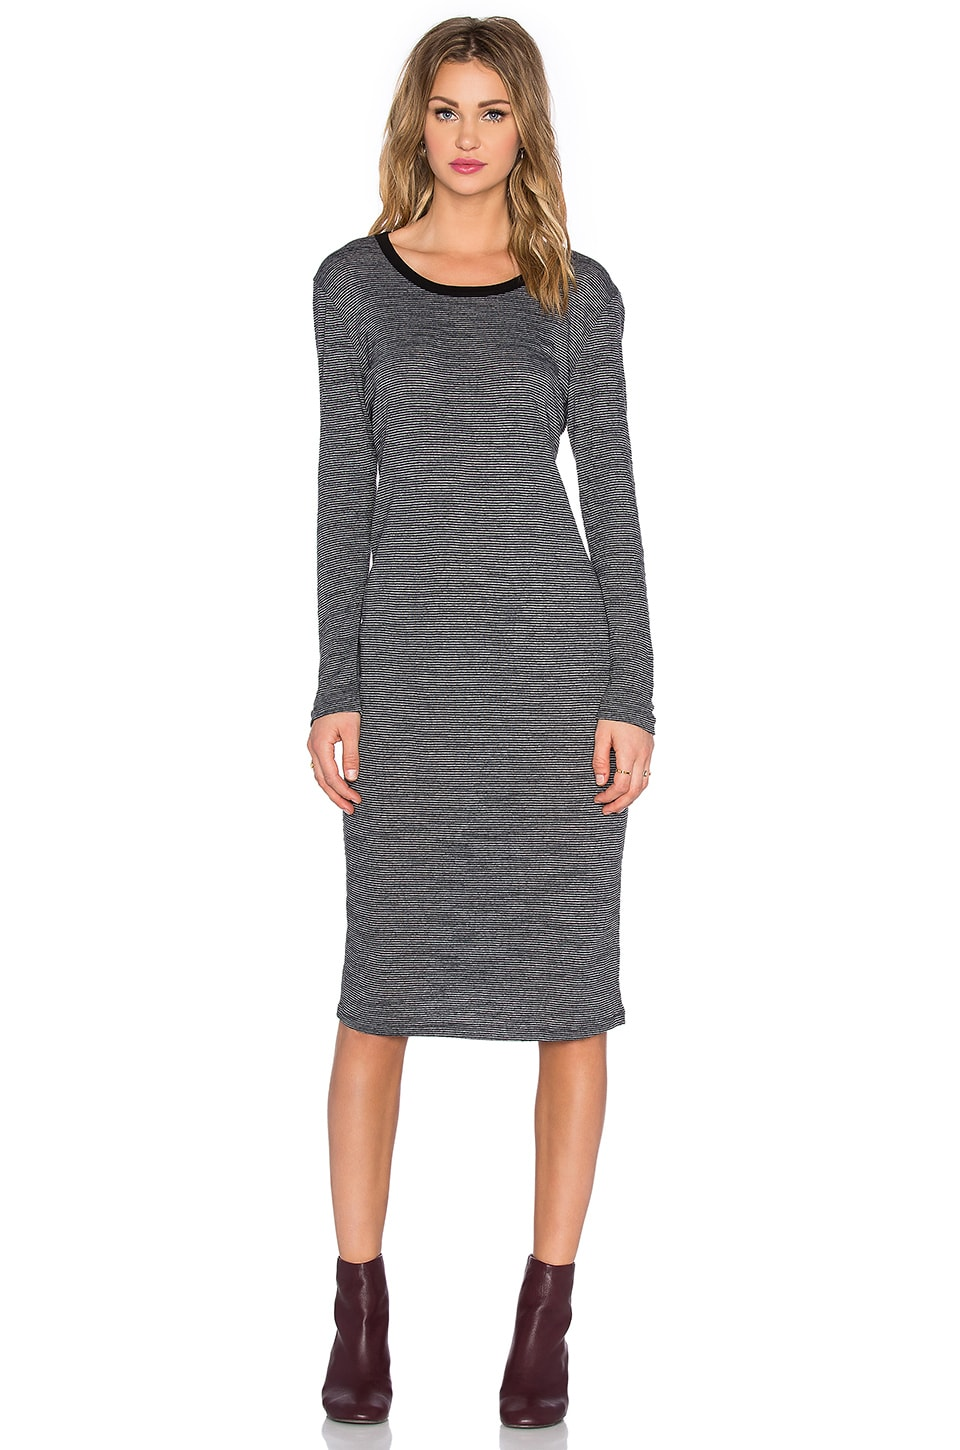 Nation LTD Talia T-Shirt Dress in Black